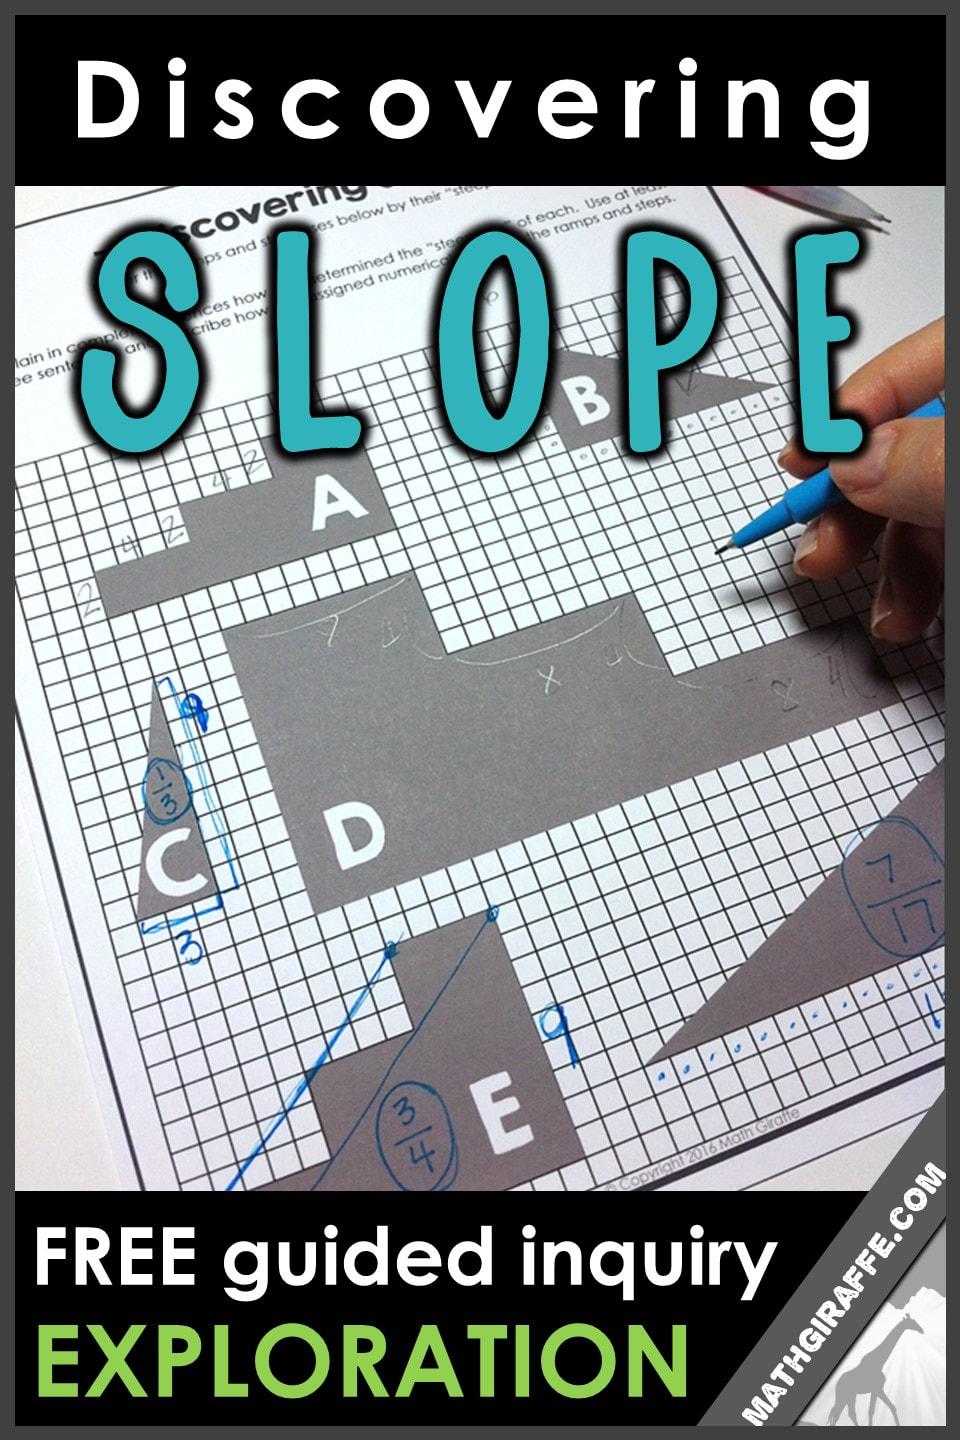 teaching slope through inquiry - a free discovery / guided exploration of slope formula for algebra